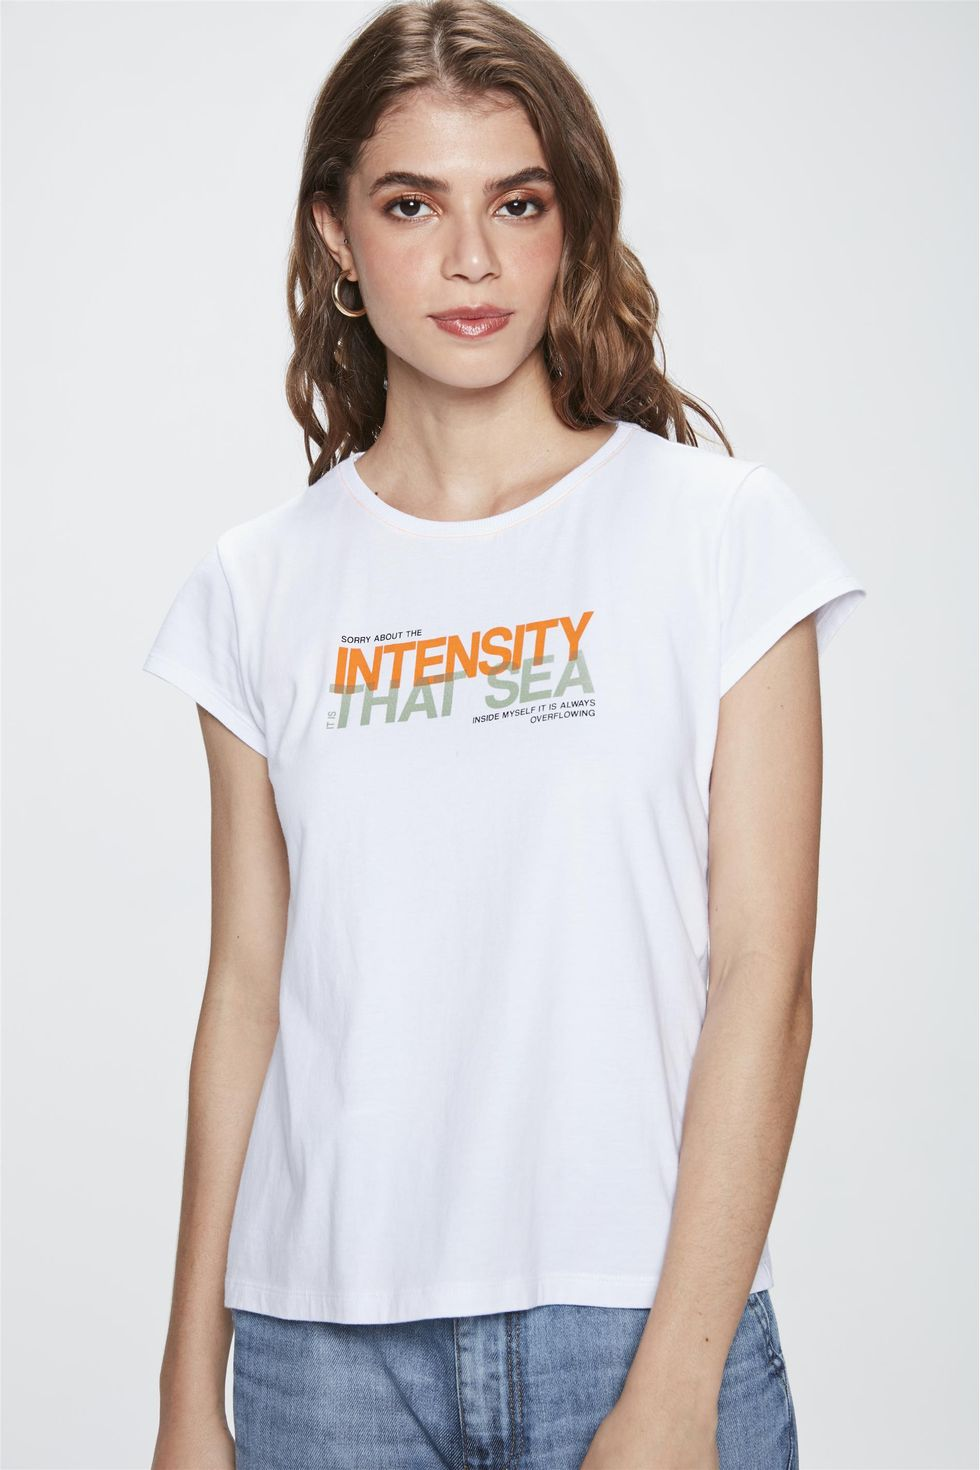 Camiseta-com-Estampa-Intensity-That-Sea-Frente--